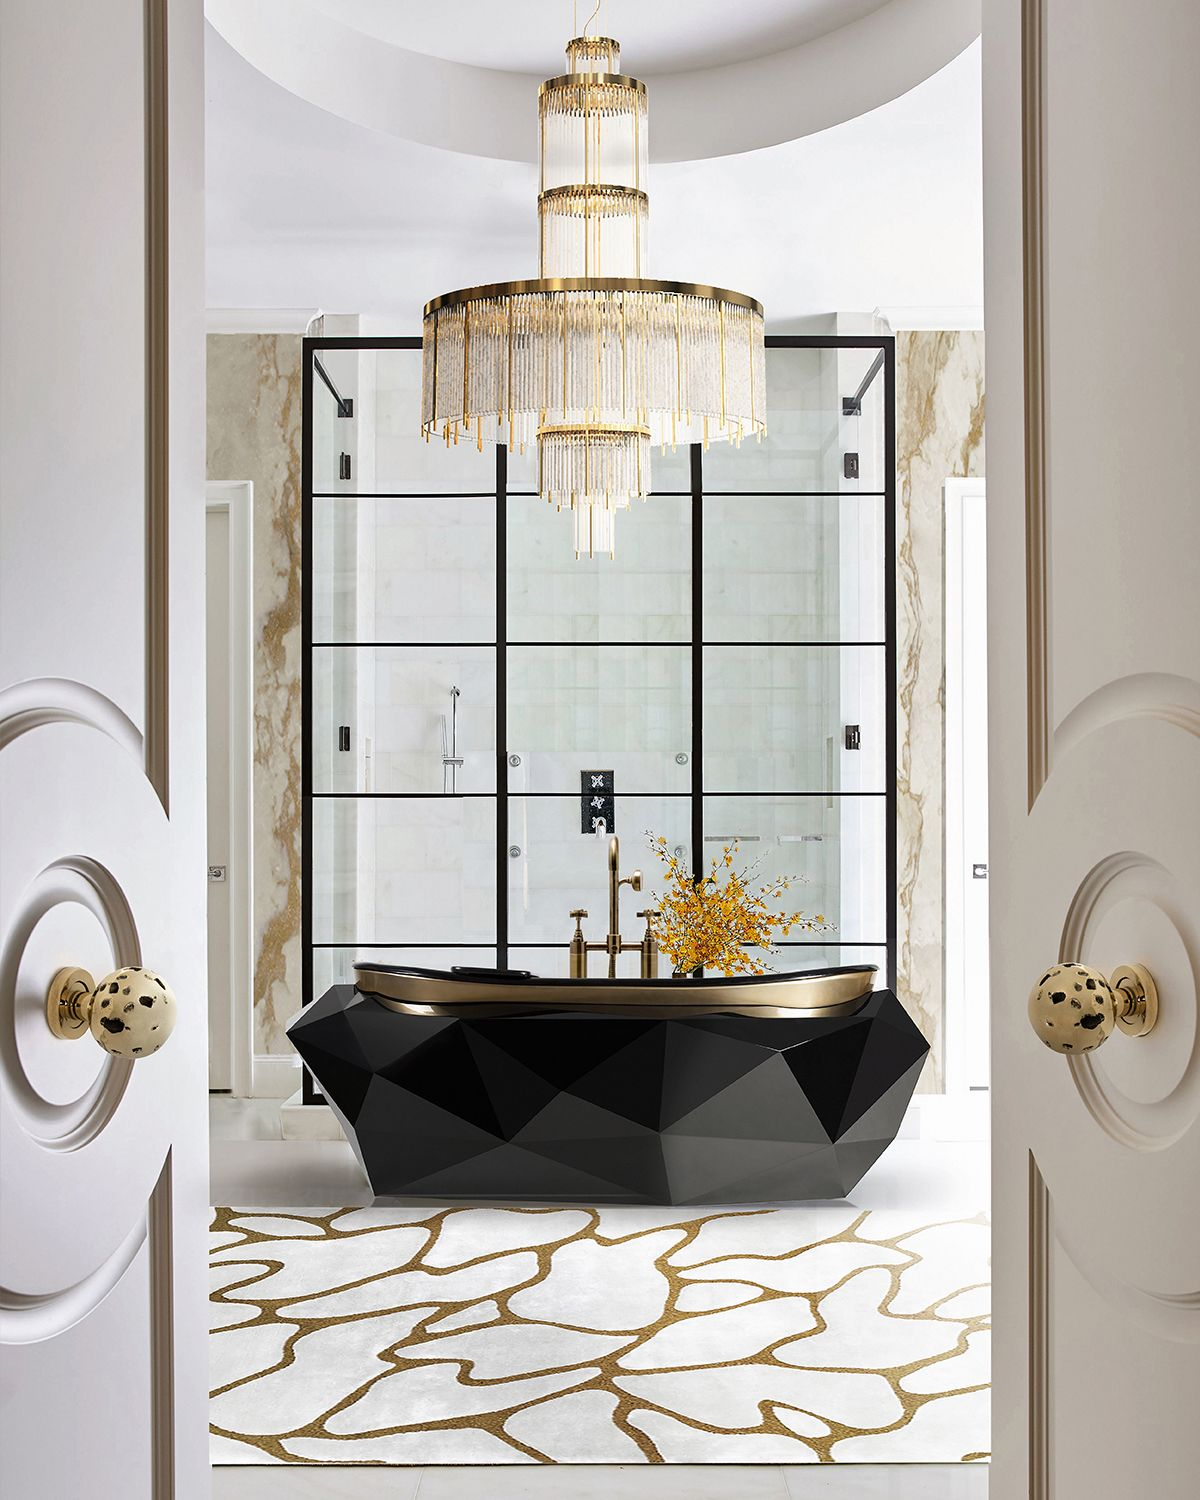 How To Make Your Bathroom More Glamorous With Gold Details In 2020 Bathroom Design Luxury Bathroom Decor Luxury Luxury Bathroom